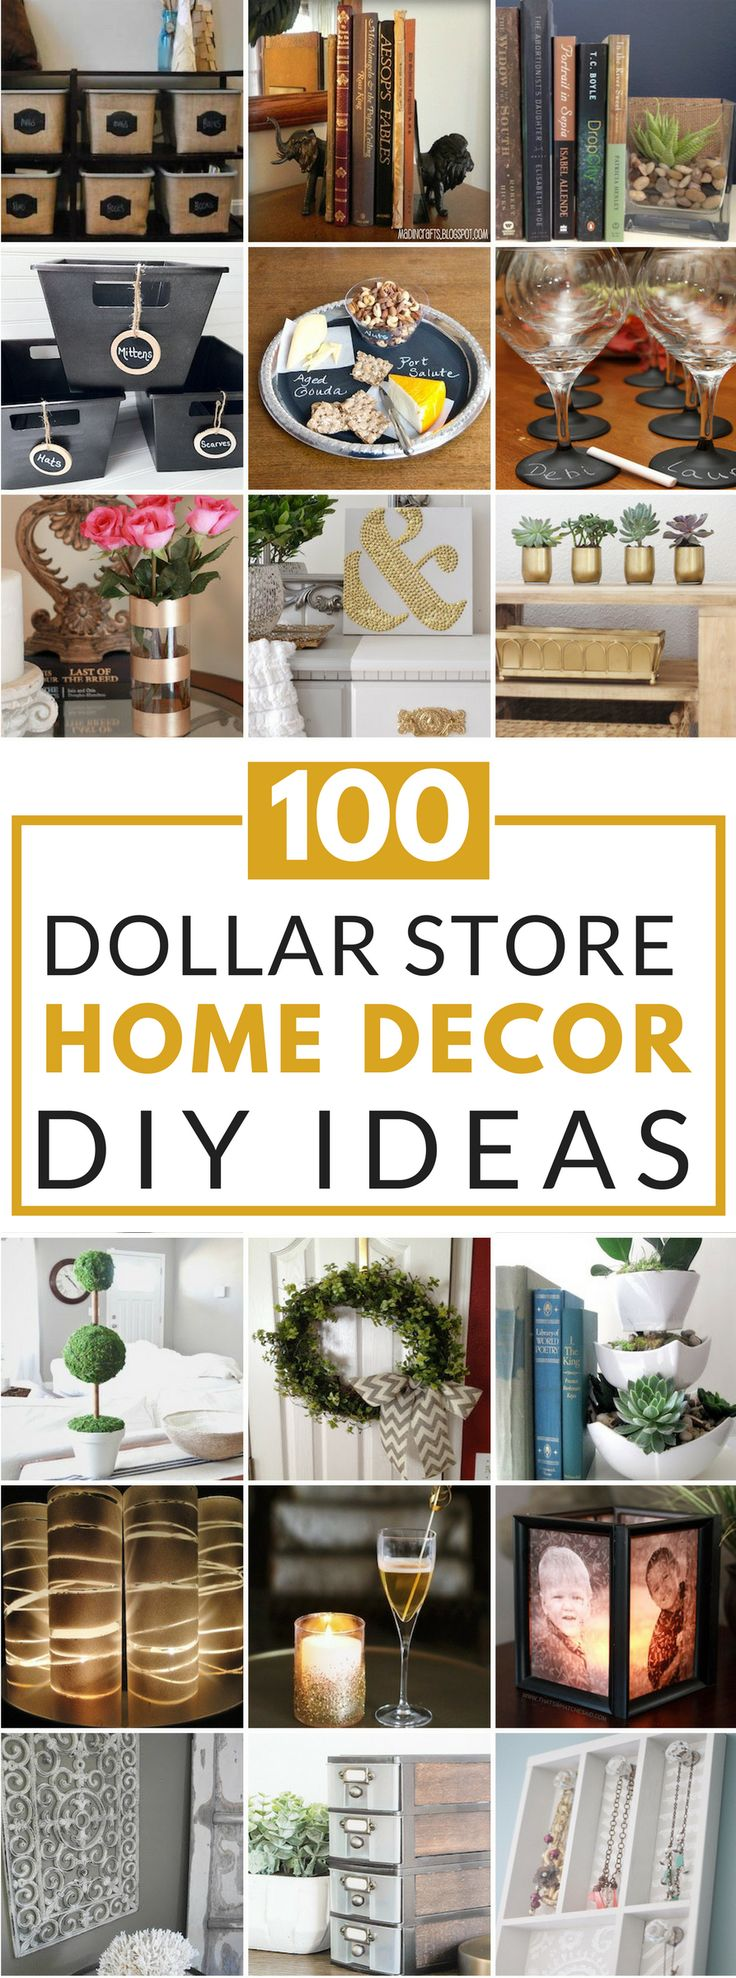 Beautiful Dollar Tree Home Decor Ideas Part - 11: 100 Dollar Store DIY Home Decor Ideas